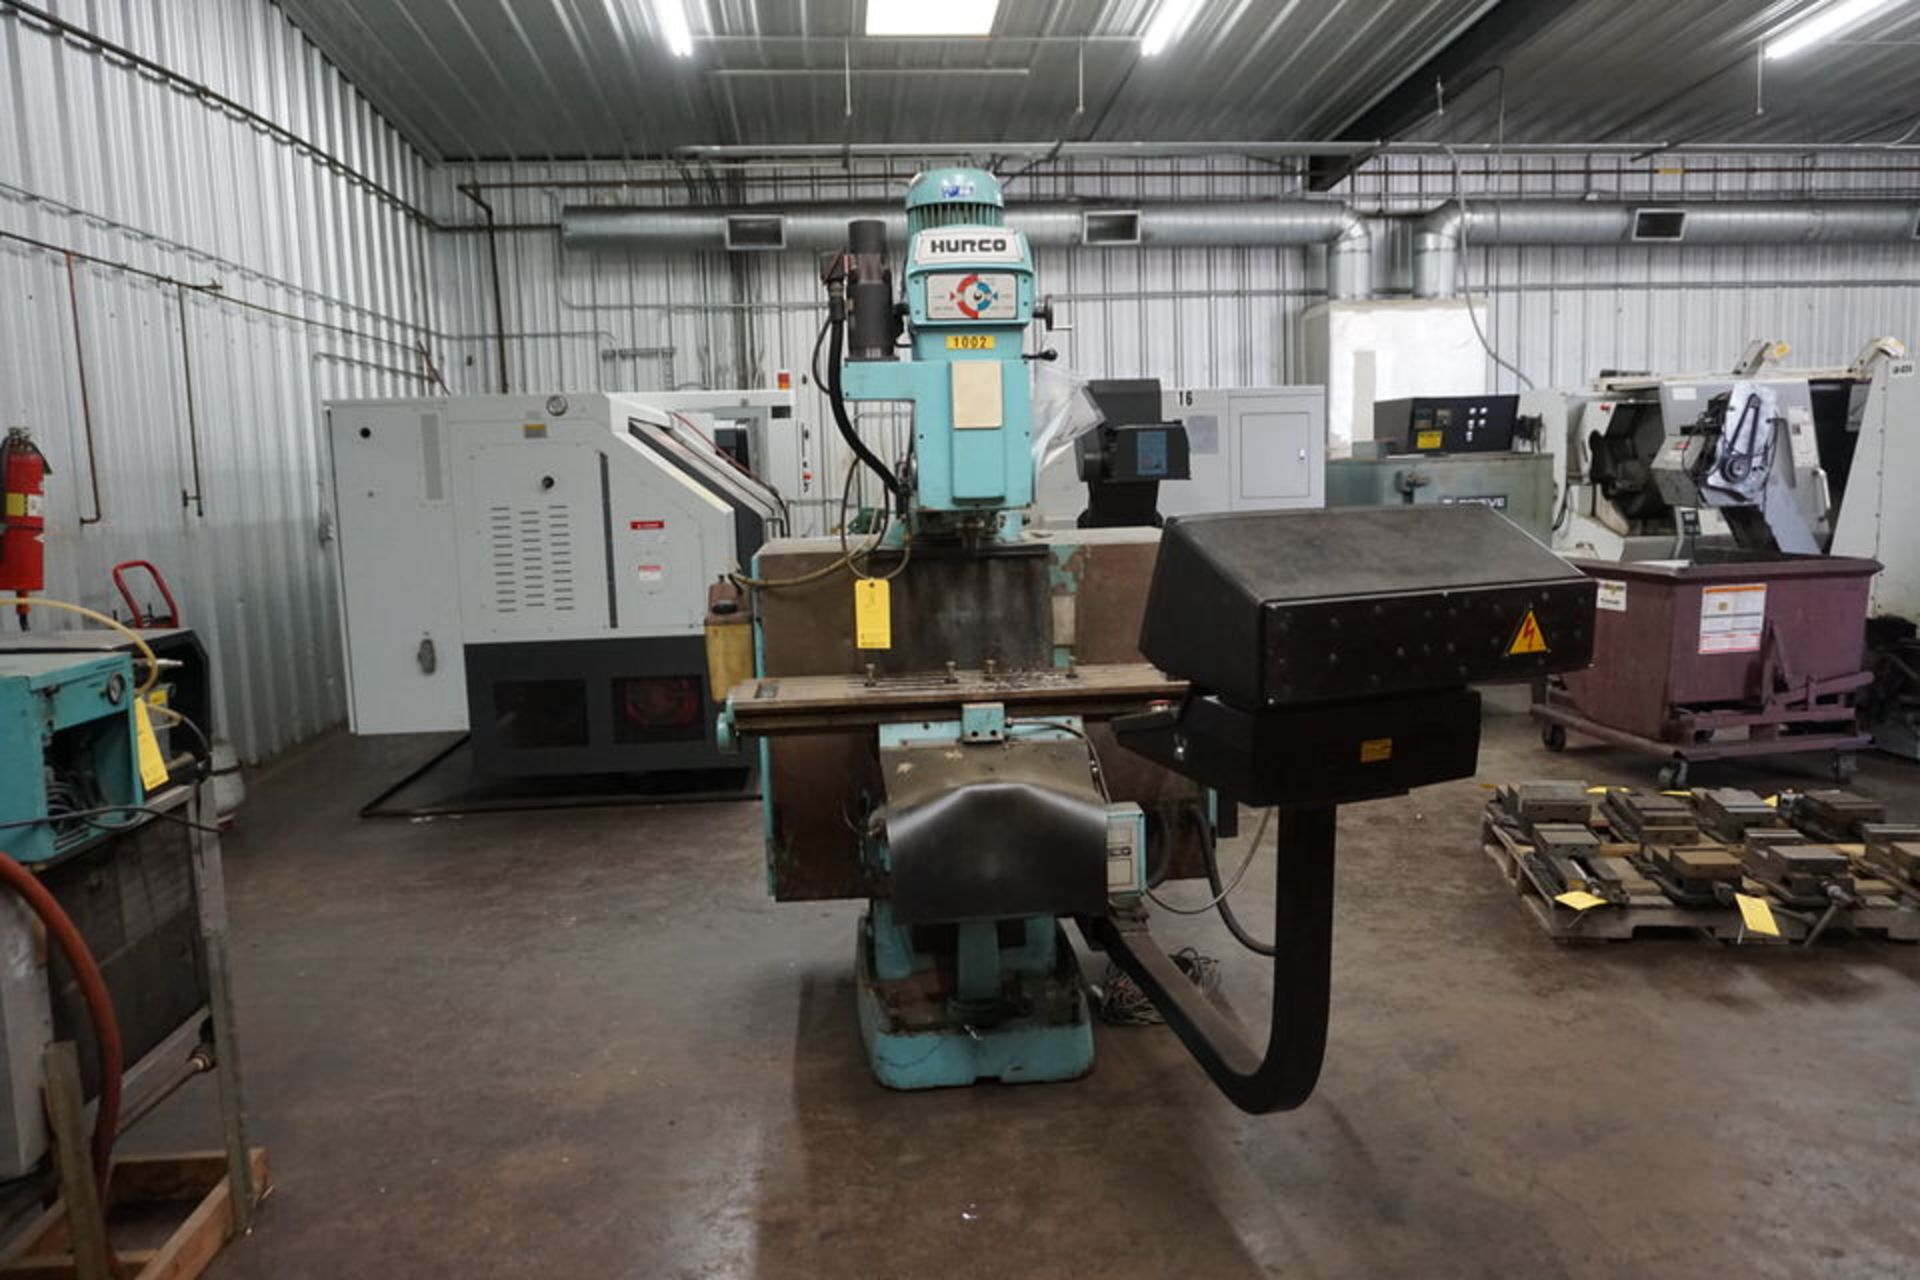 HURCO VERTICAL MILLING MACHINE W/ HURCO ULTIMAX KM-3 CONTROL